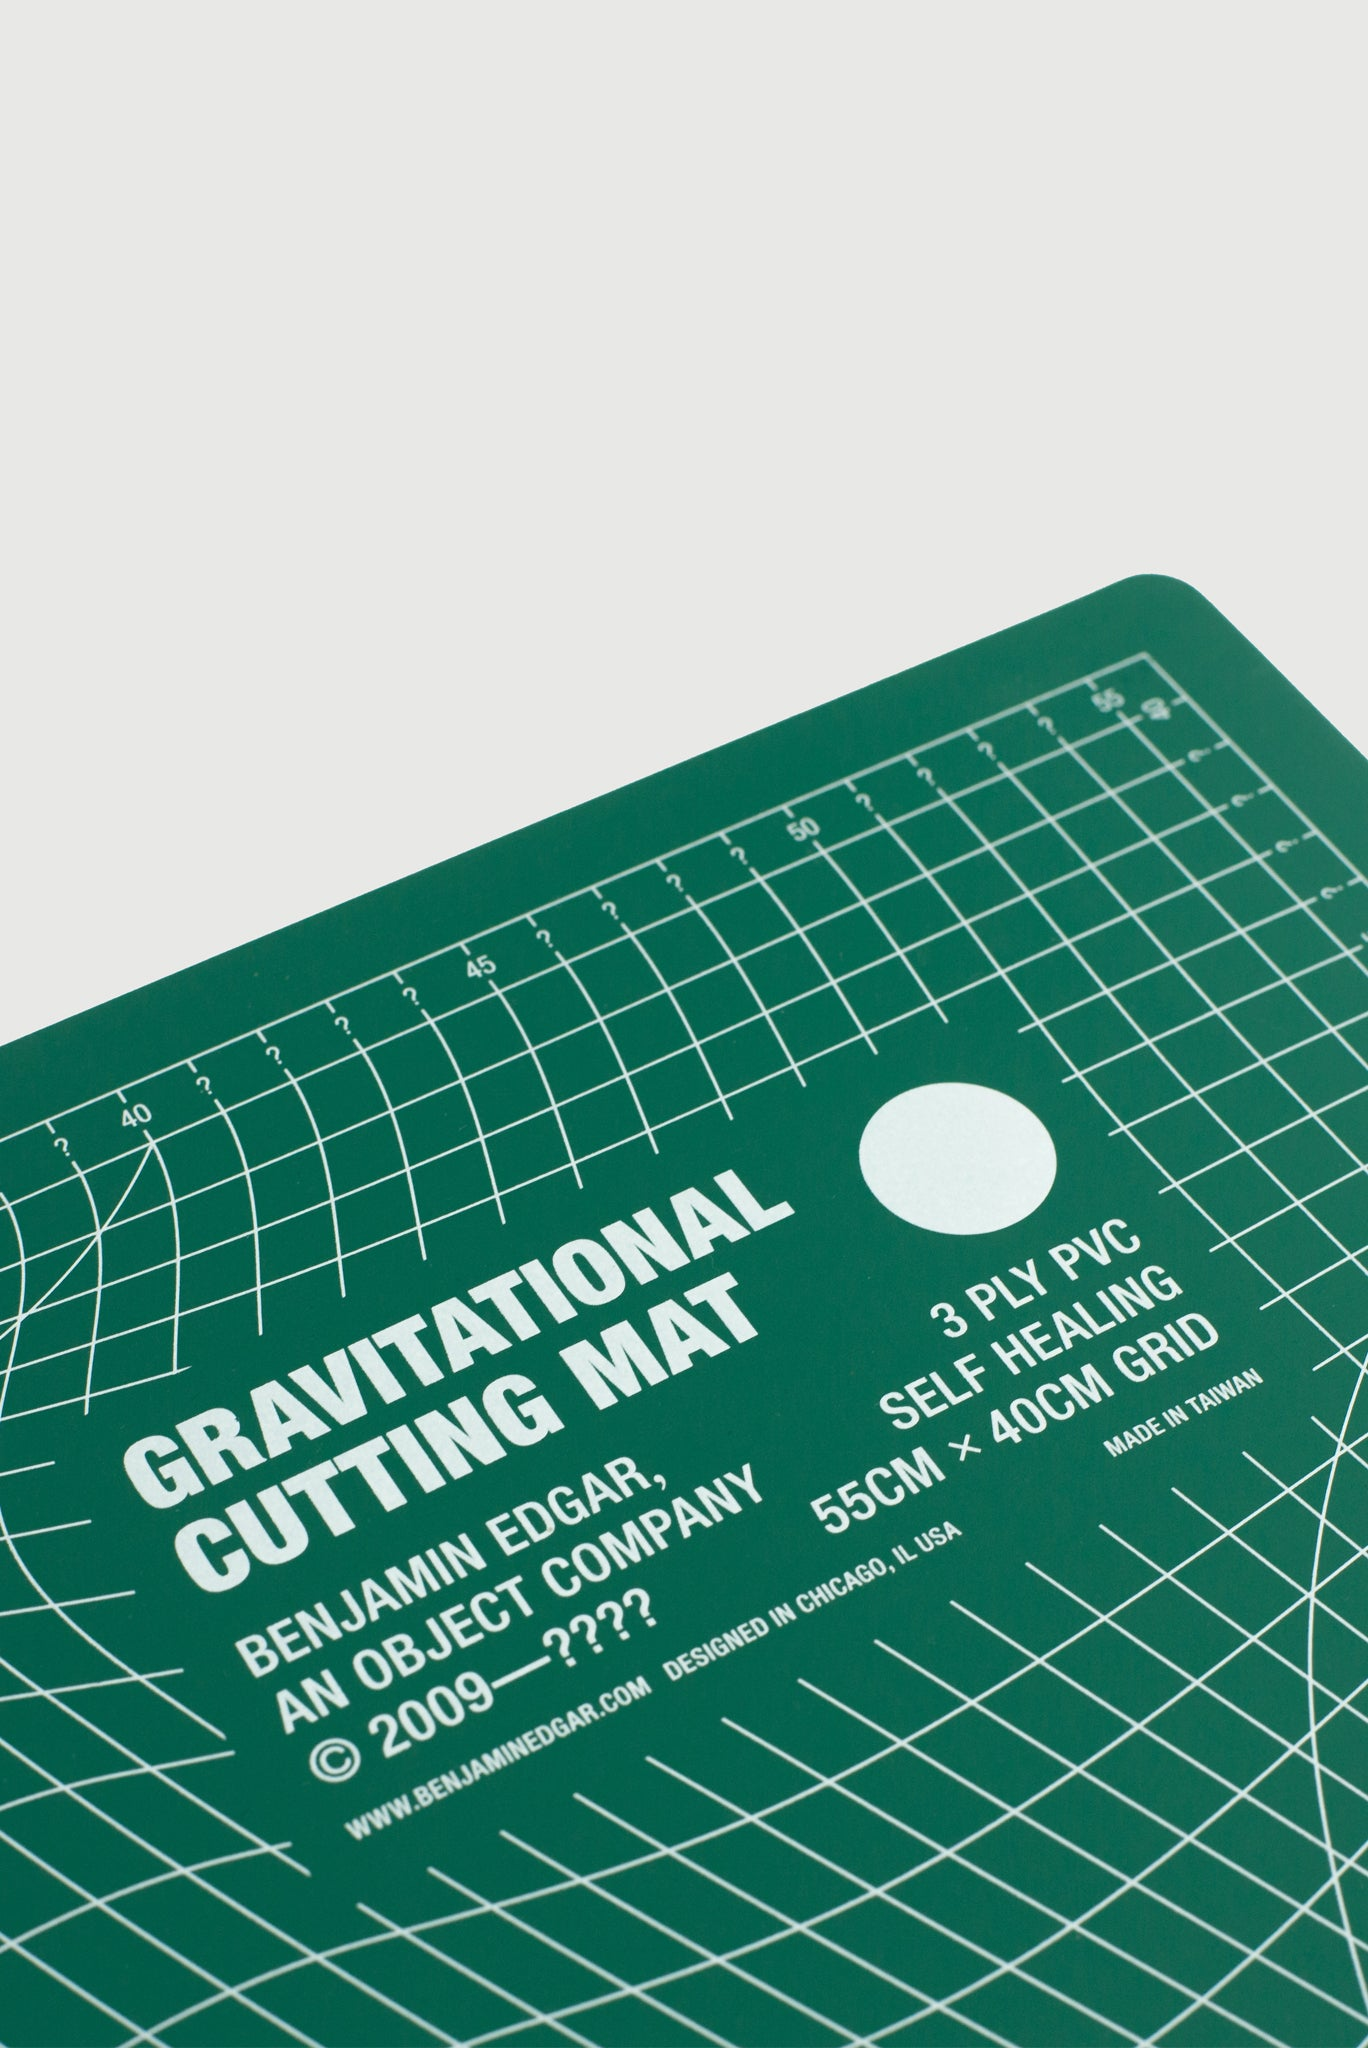 Gravitational Cutting Mat